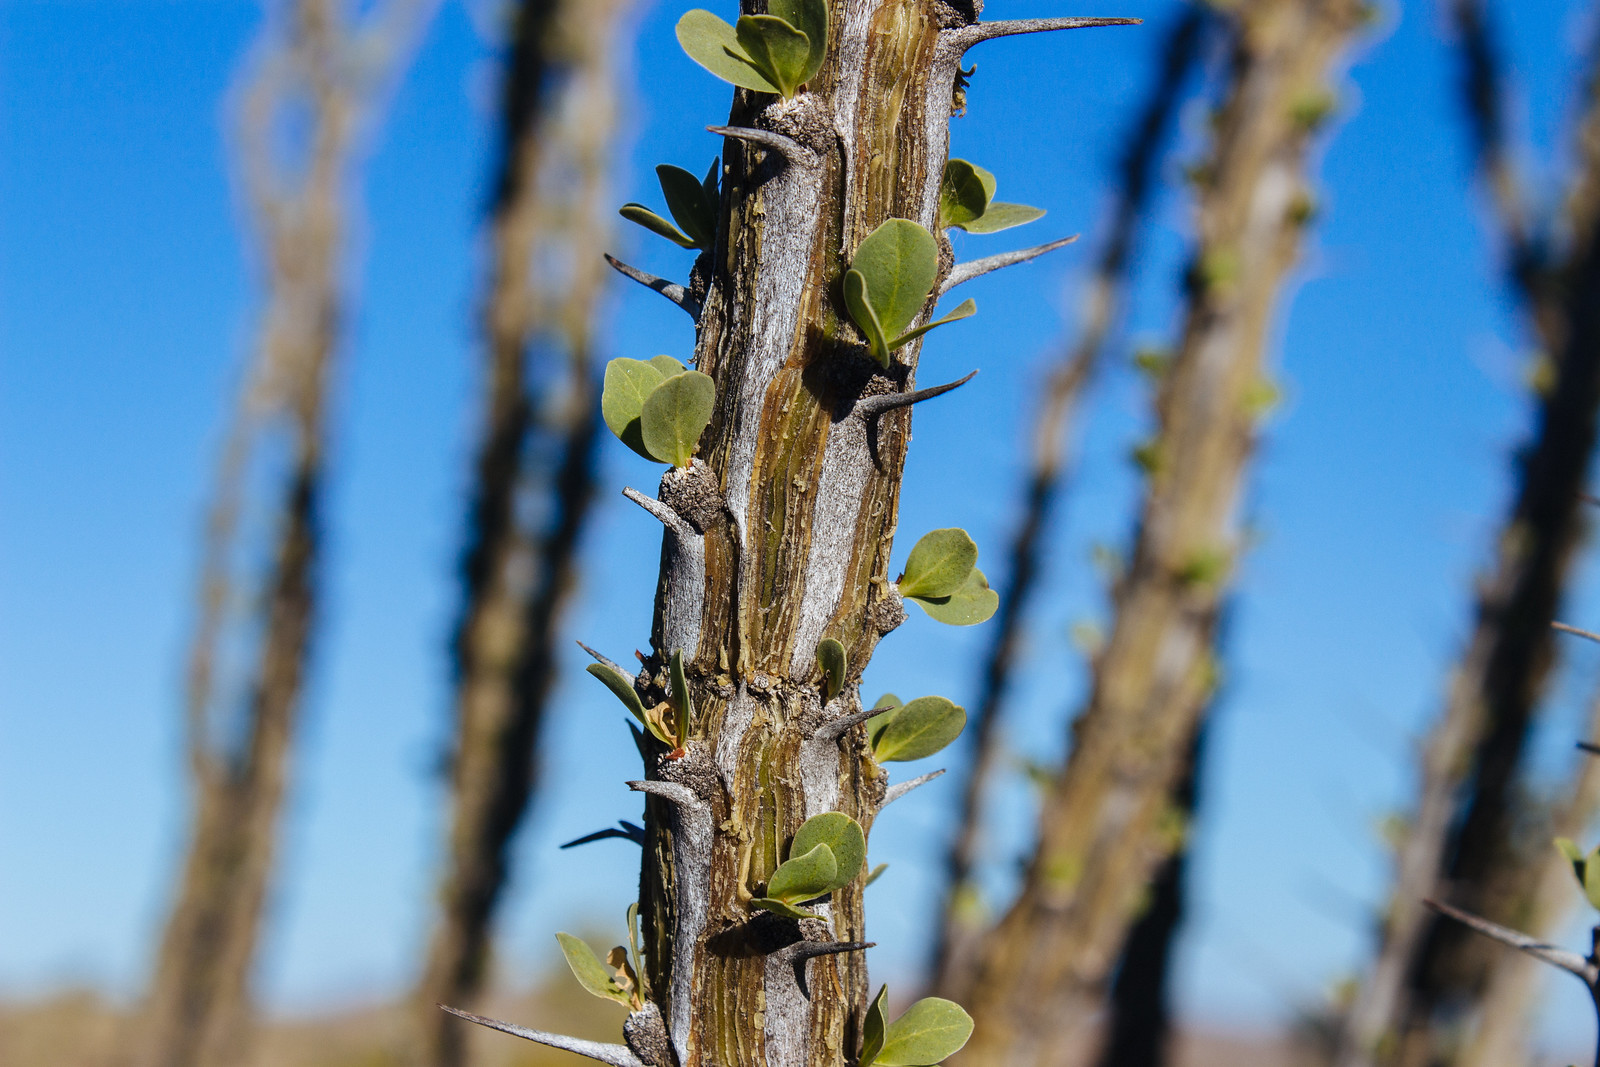 Focus on one of several branches of an ocotillo plant with spikes, leaves, and green bark